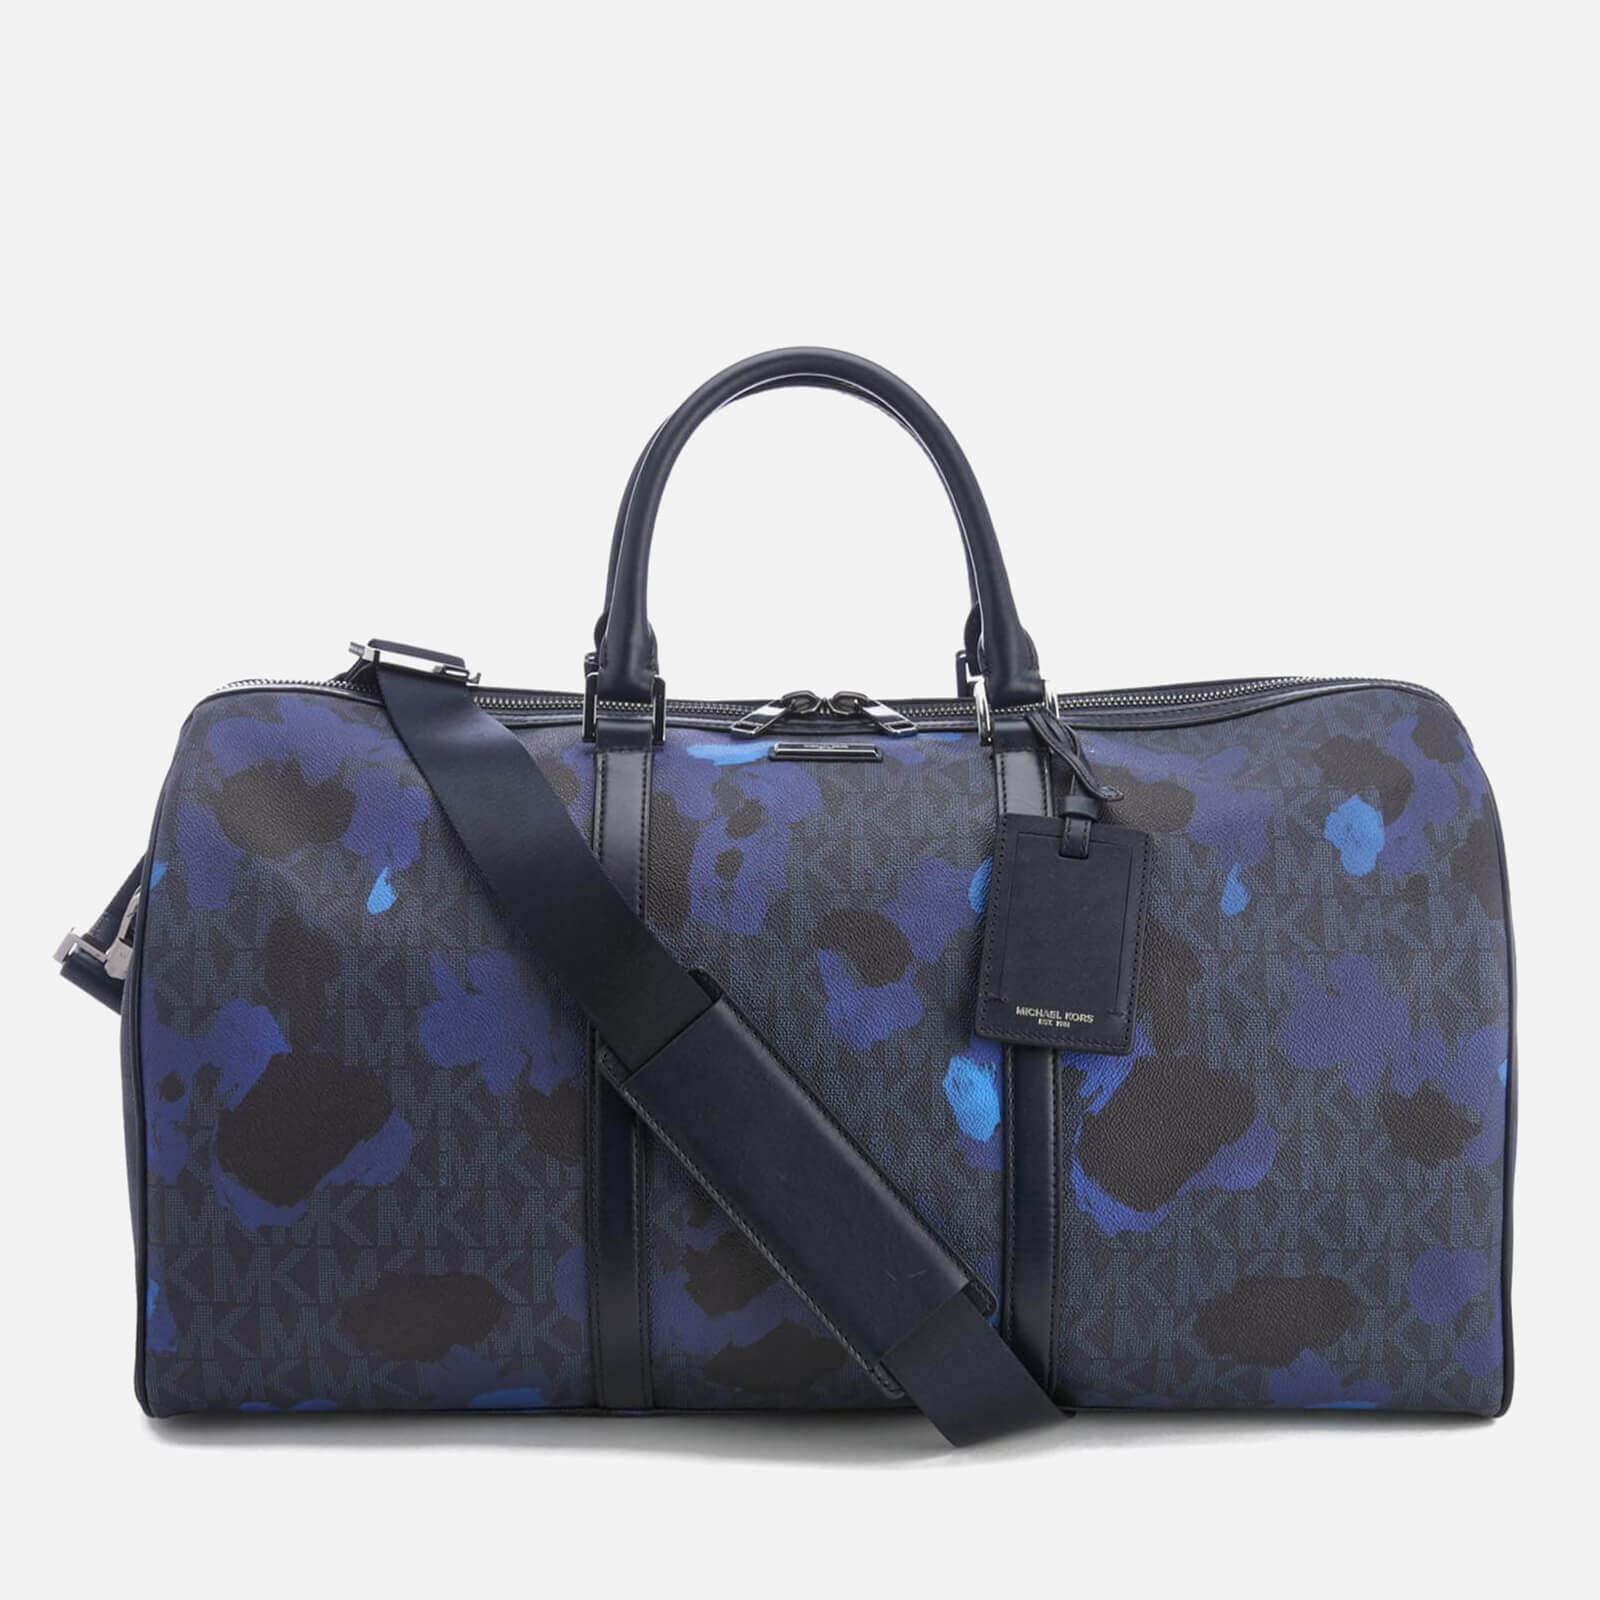 2b59f9691f Michael Kors Men s Jet Set Travel Large Duffle Bag - Midnight - Free UK  Delivery over £50